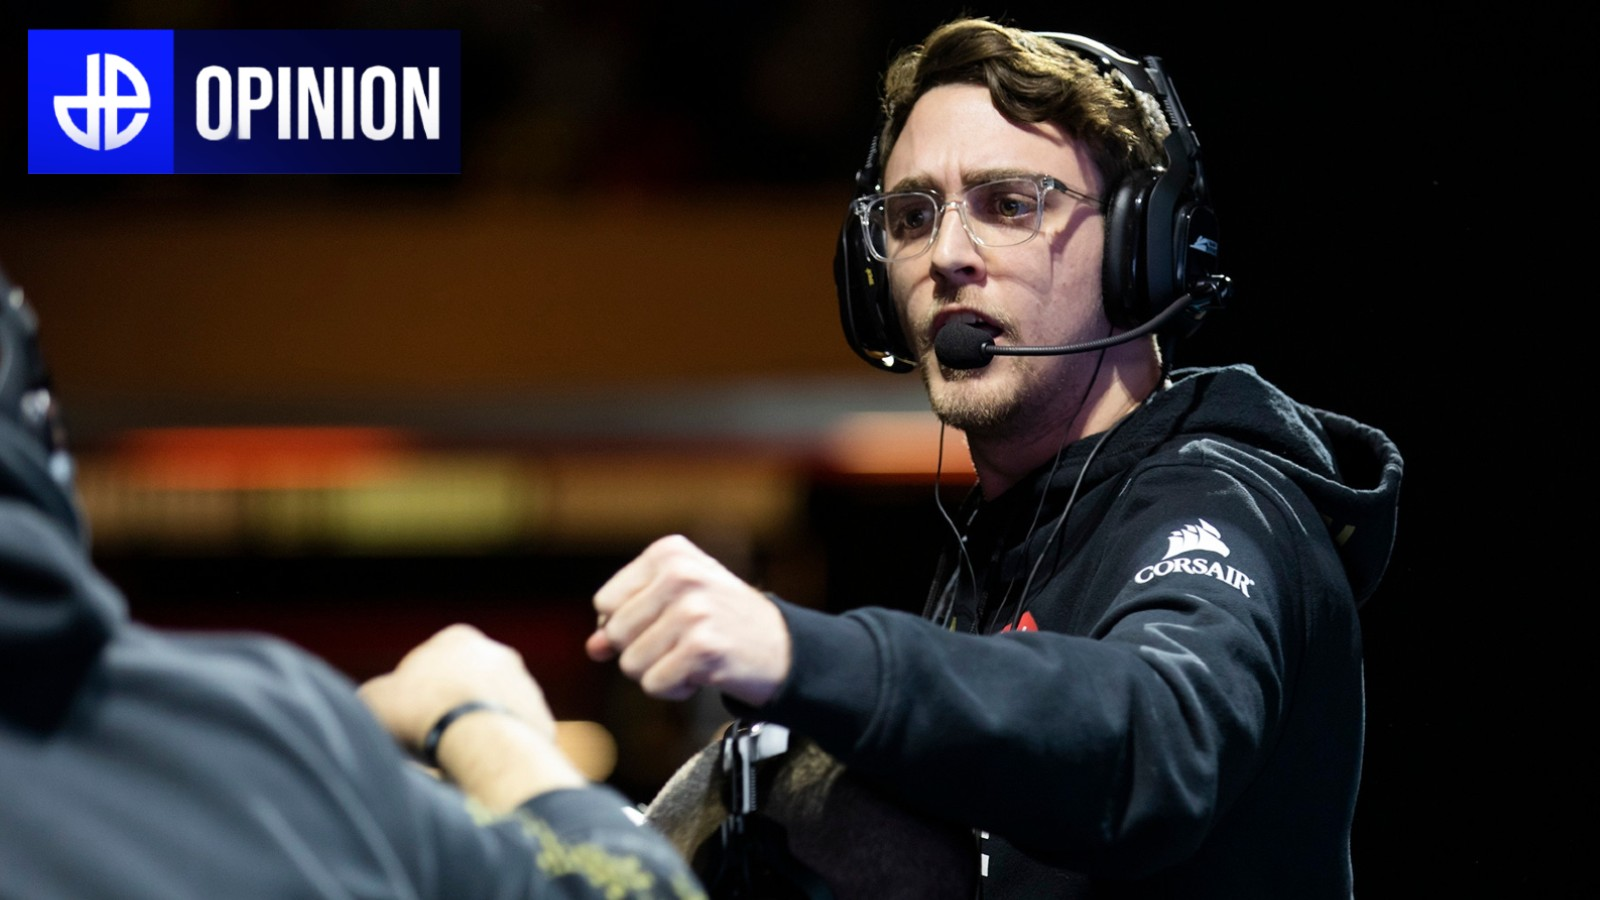 Clayster for New York Subliners in CDL